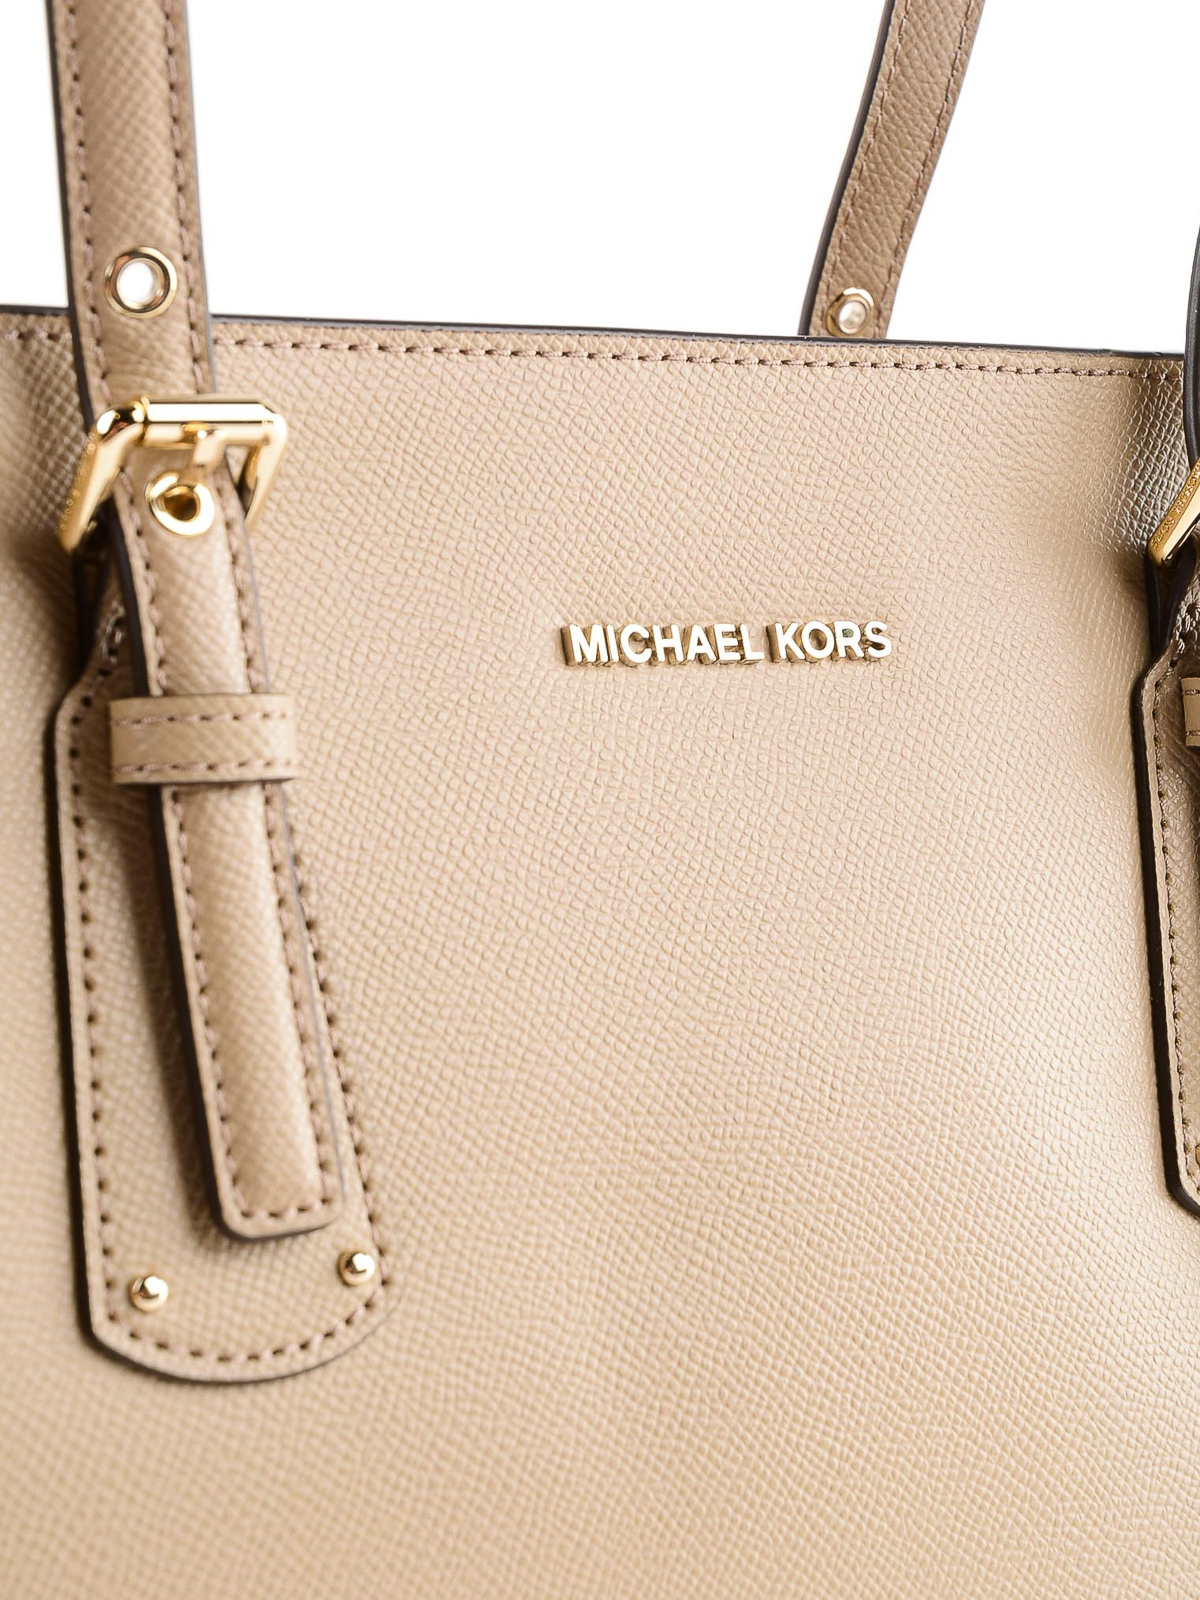 3665e3163dcfc4 Michael Kors - Voyager medium beige leather tote - totes bags ...